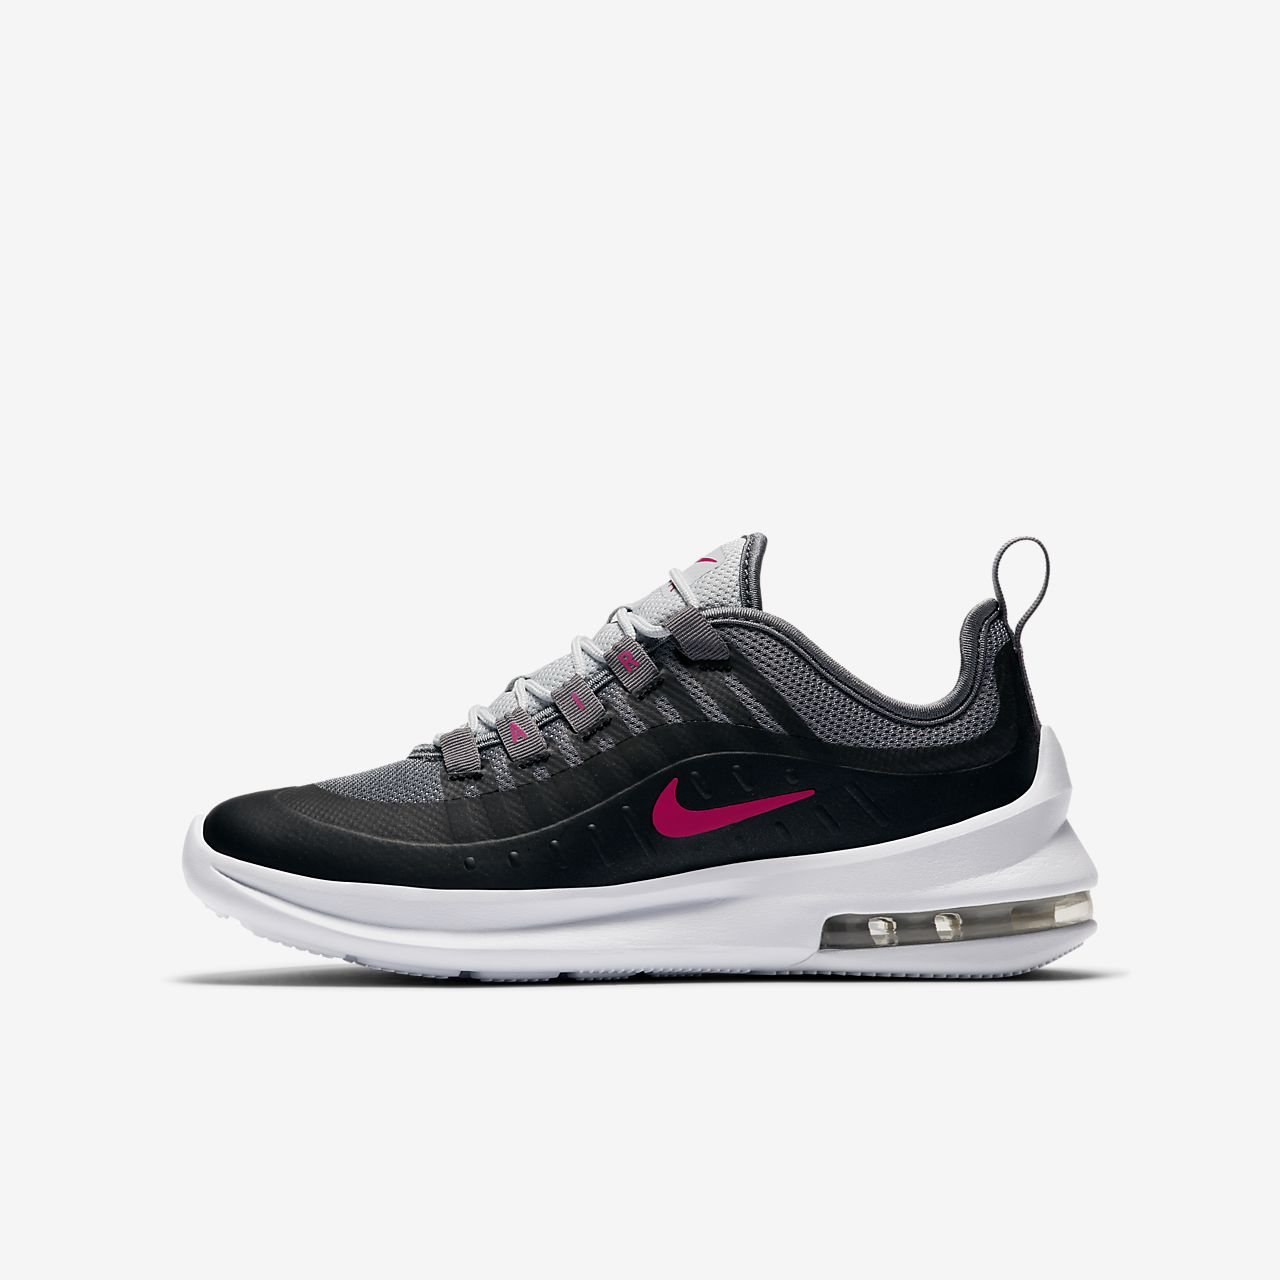 Force Ones Nike Air Pas Cher Nzxt